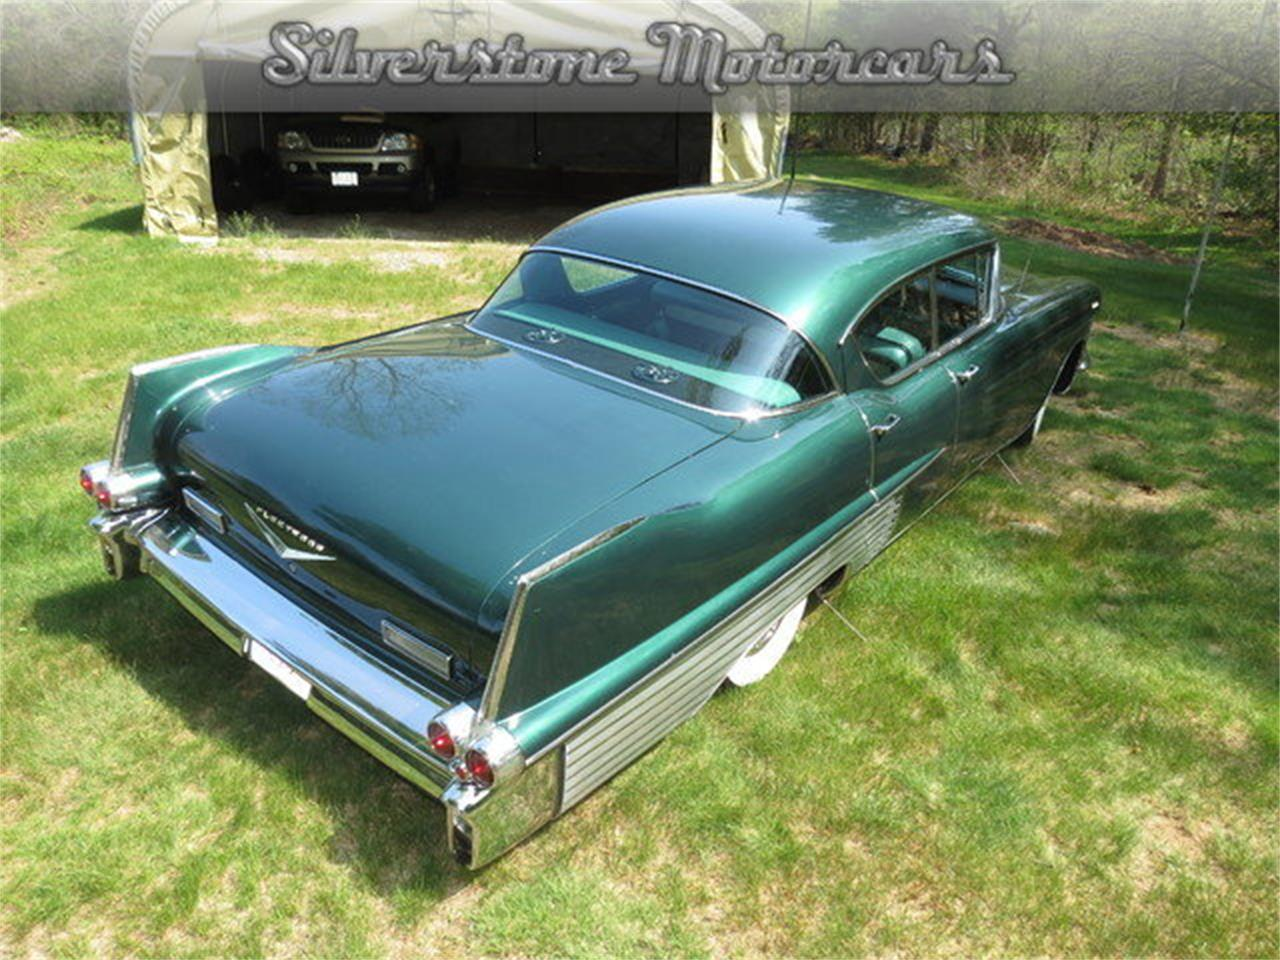 Large Picture of 1957 Cadillac Fleetwood located in Massachusetts - $19,950.00 - F8GG